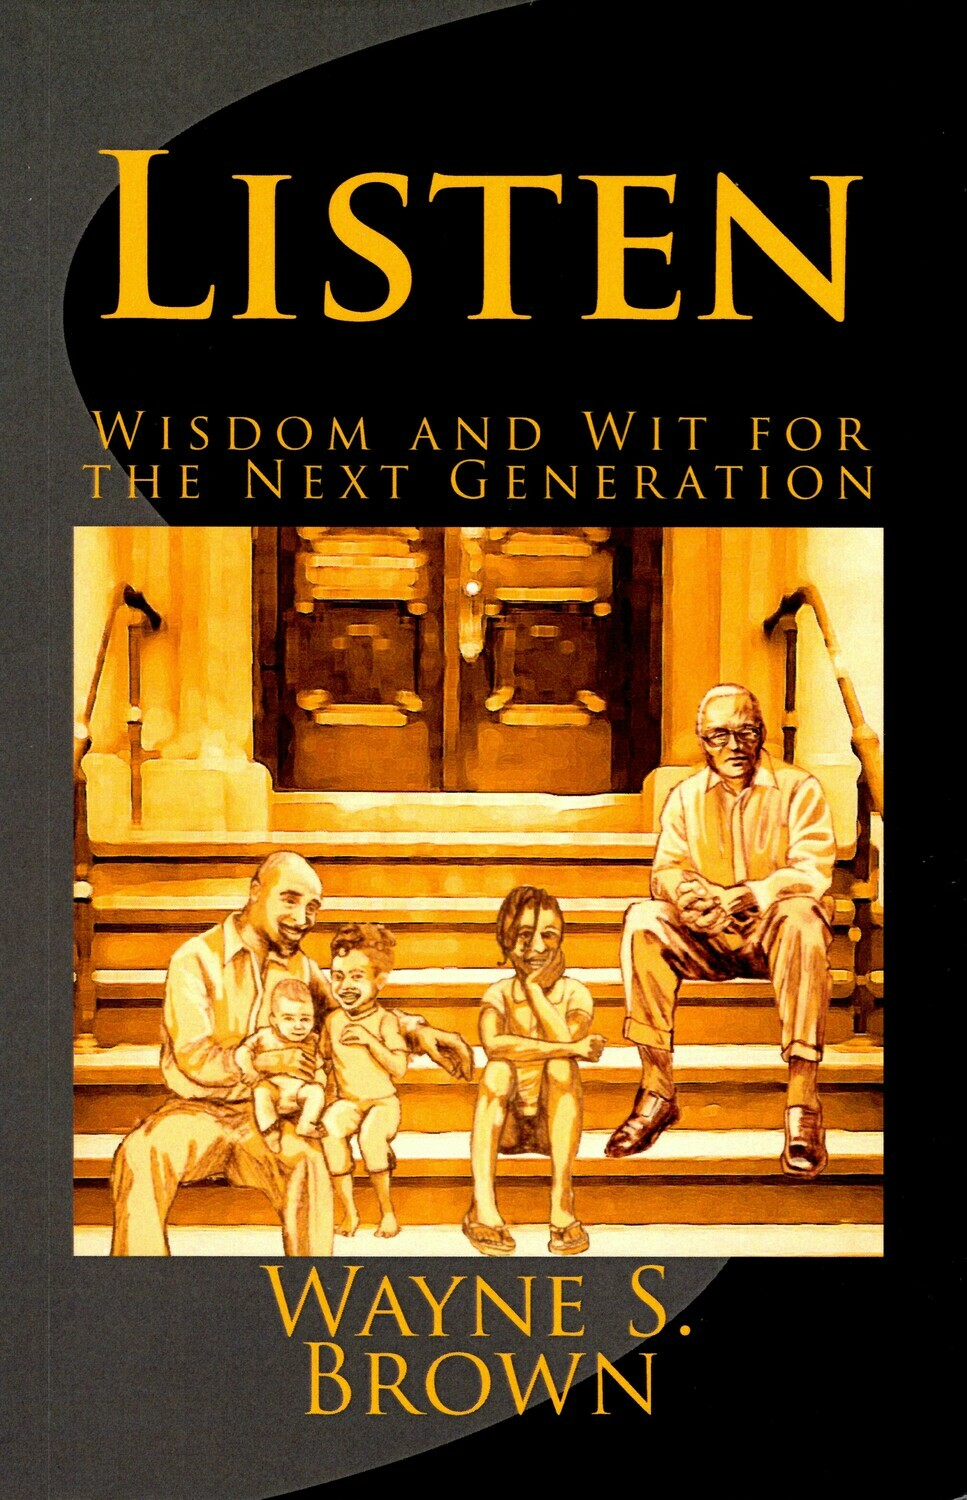 LISTEN - Wisdom and Wit for the Next Generation